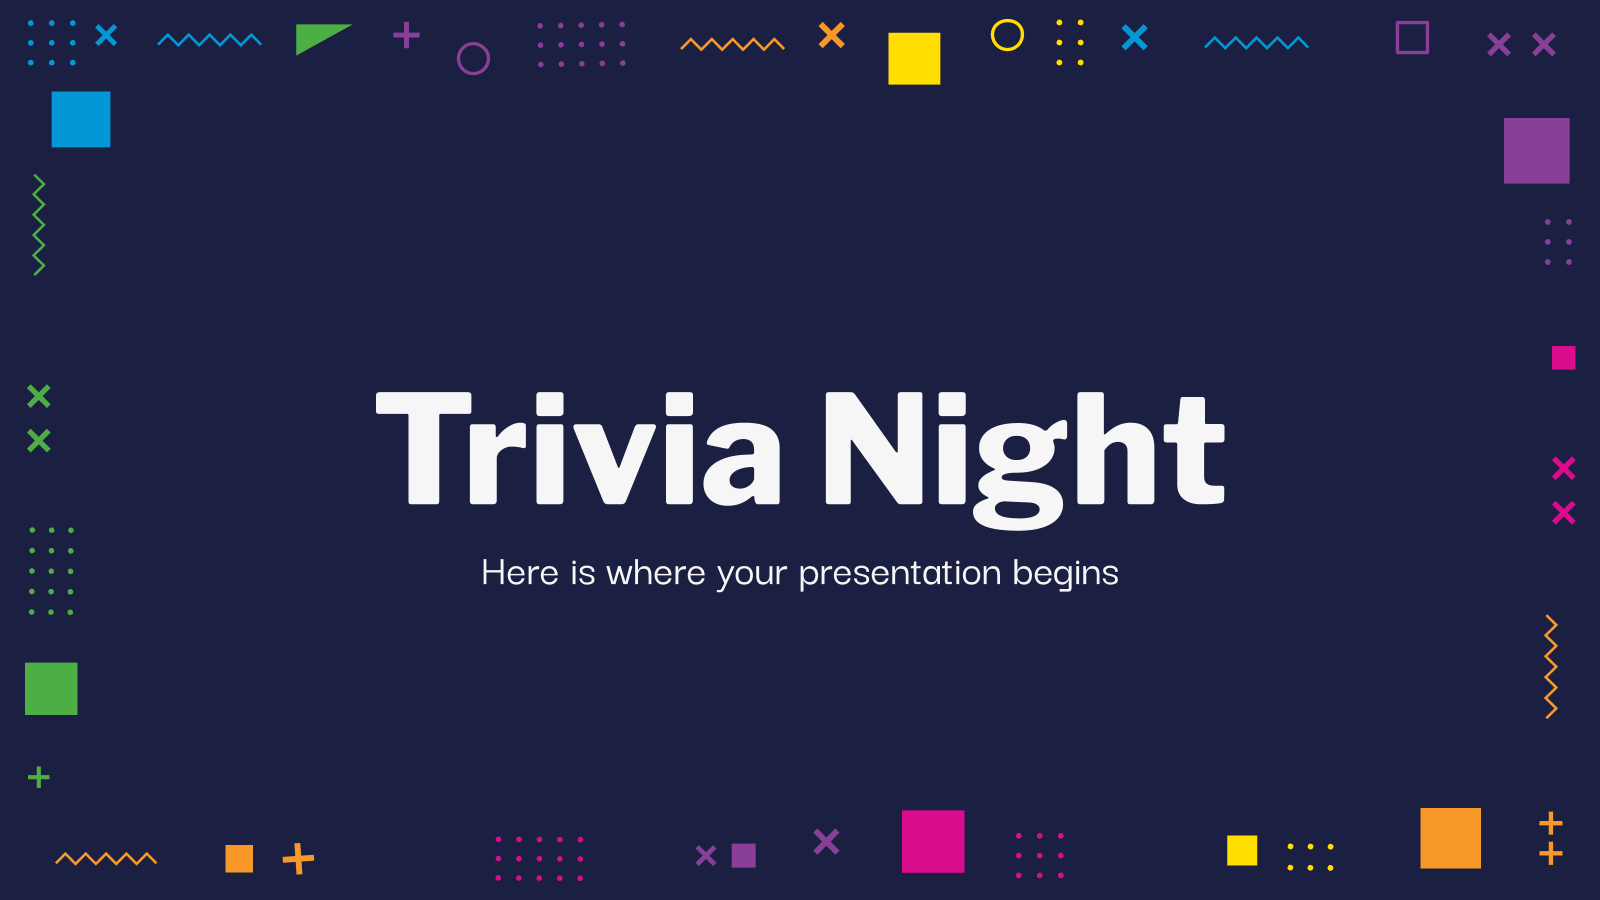 Trivia Night presentation template